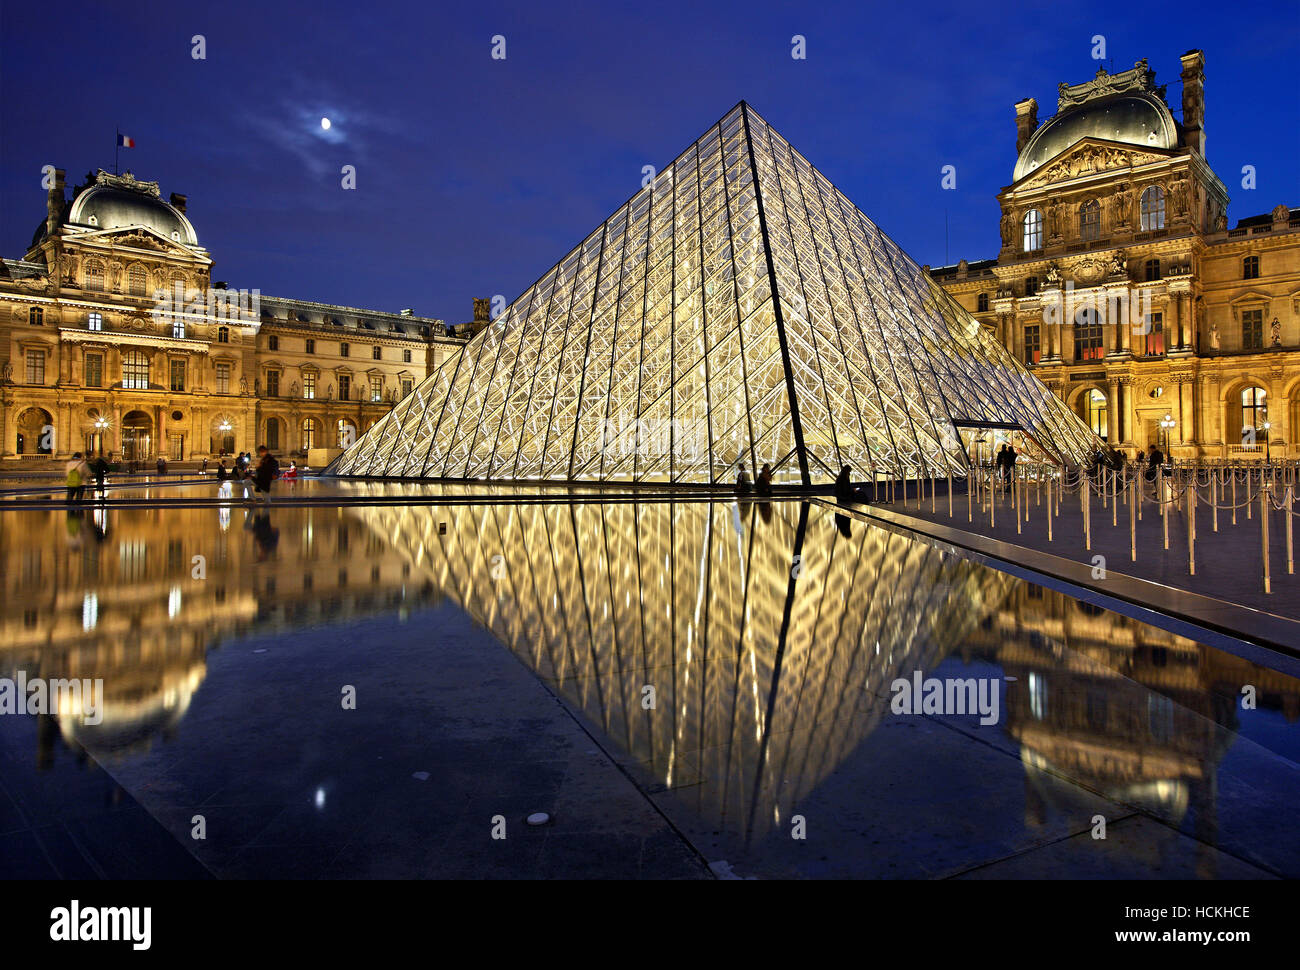 The glass pyramid (architect: I.M. Pei) of Louvre museum (Musée du Louvre), Paris, France. - Stock Image